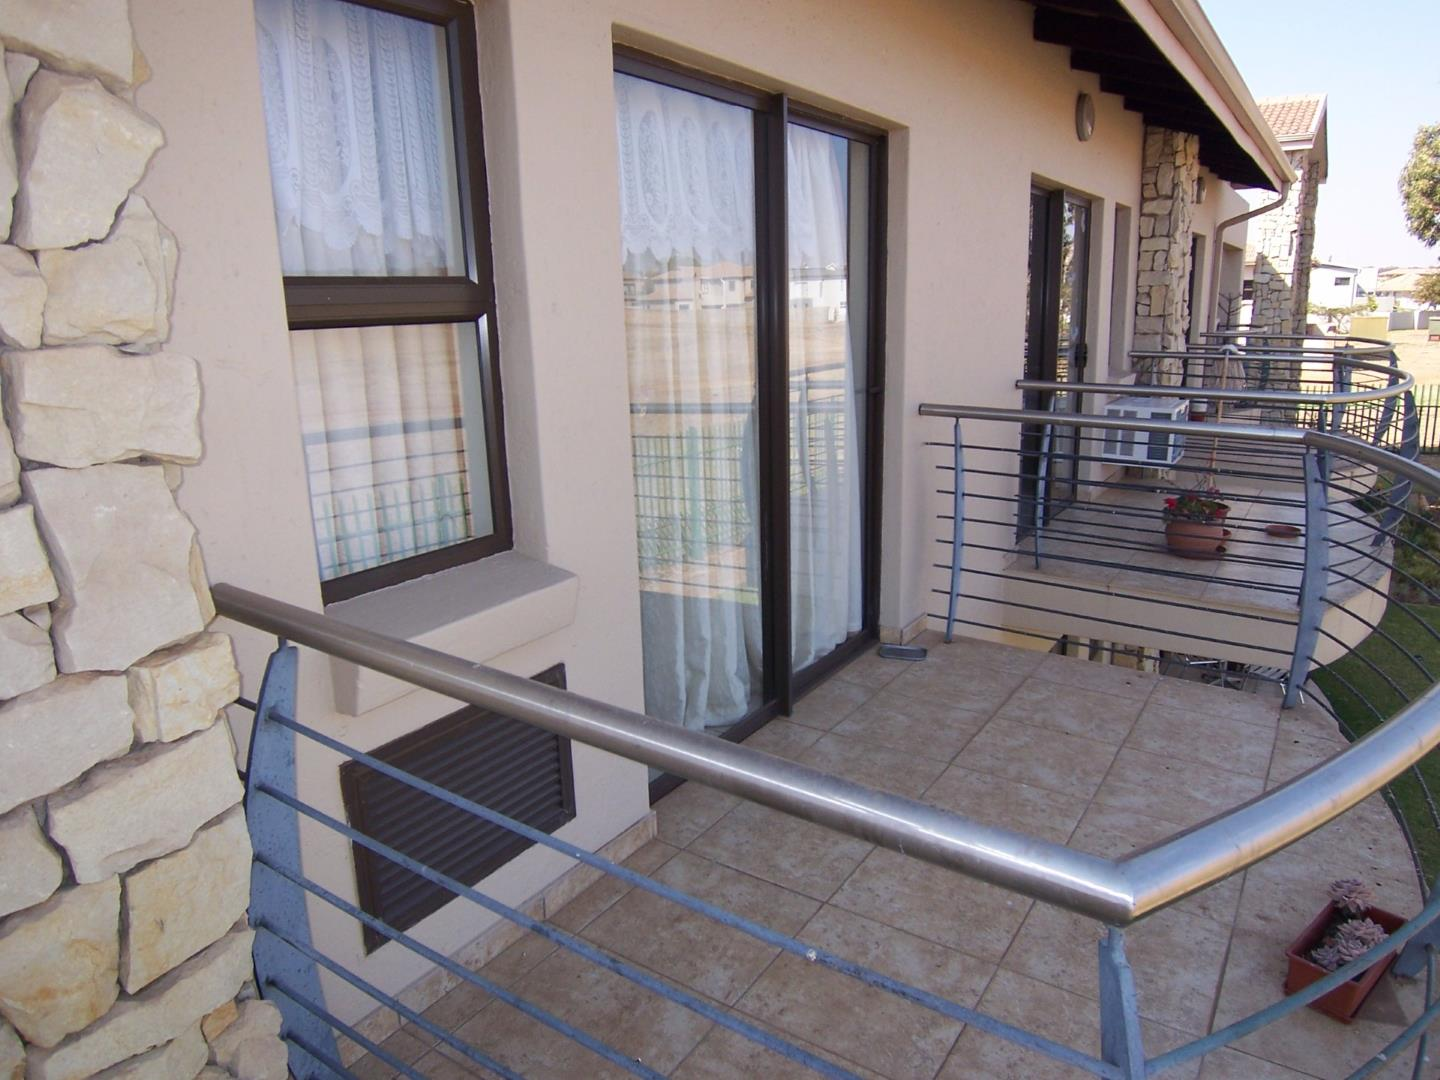 Luxury bachelor's apartment available in Frail care facility! | Junk Mail